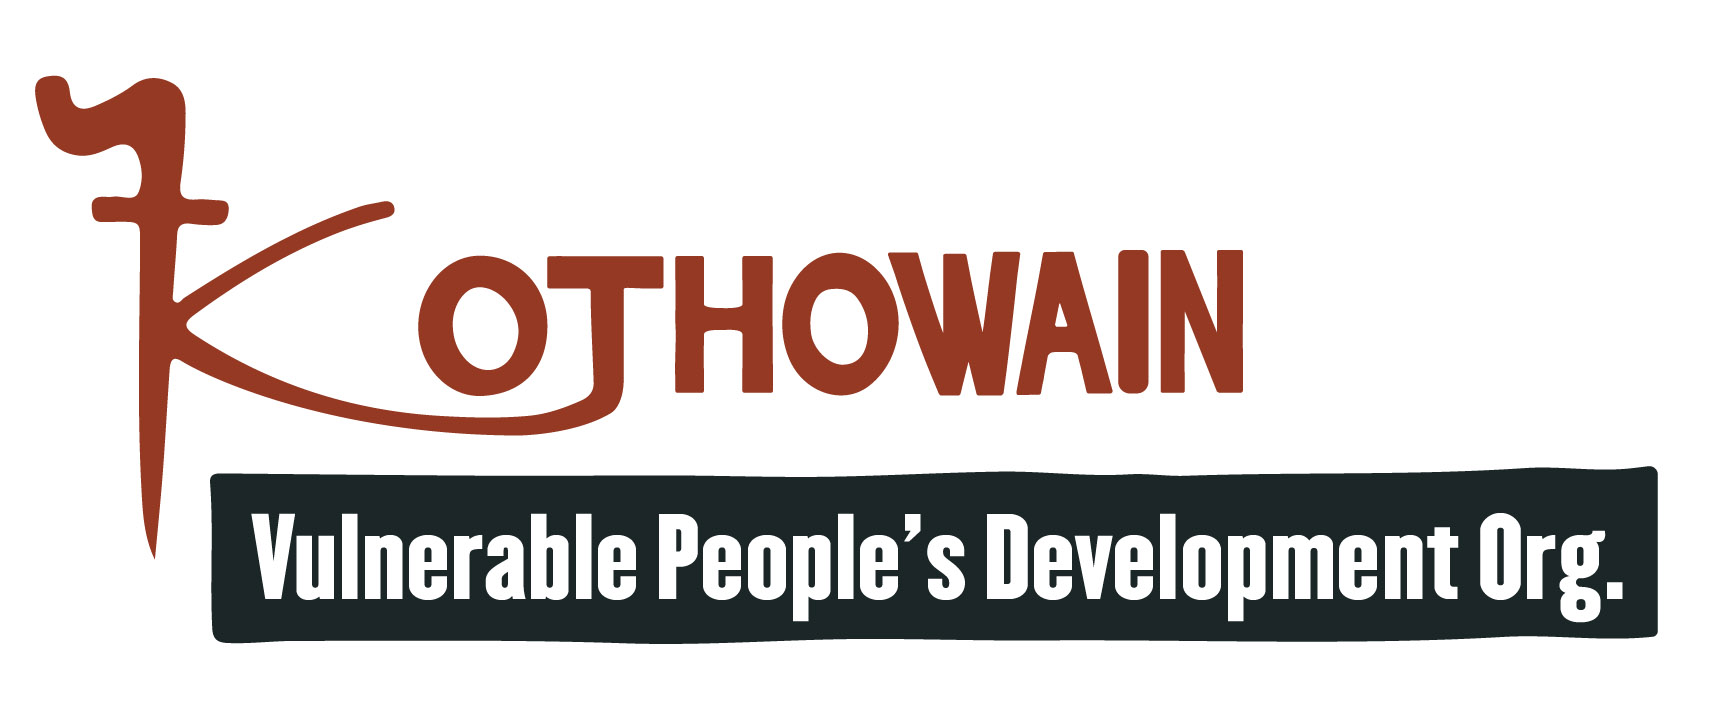 KOTHOWAIN (Vulnerable People's Development Organisation)